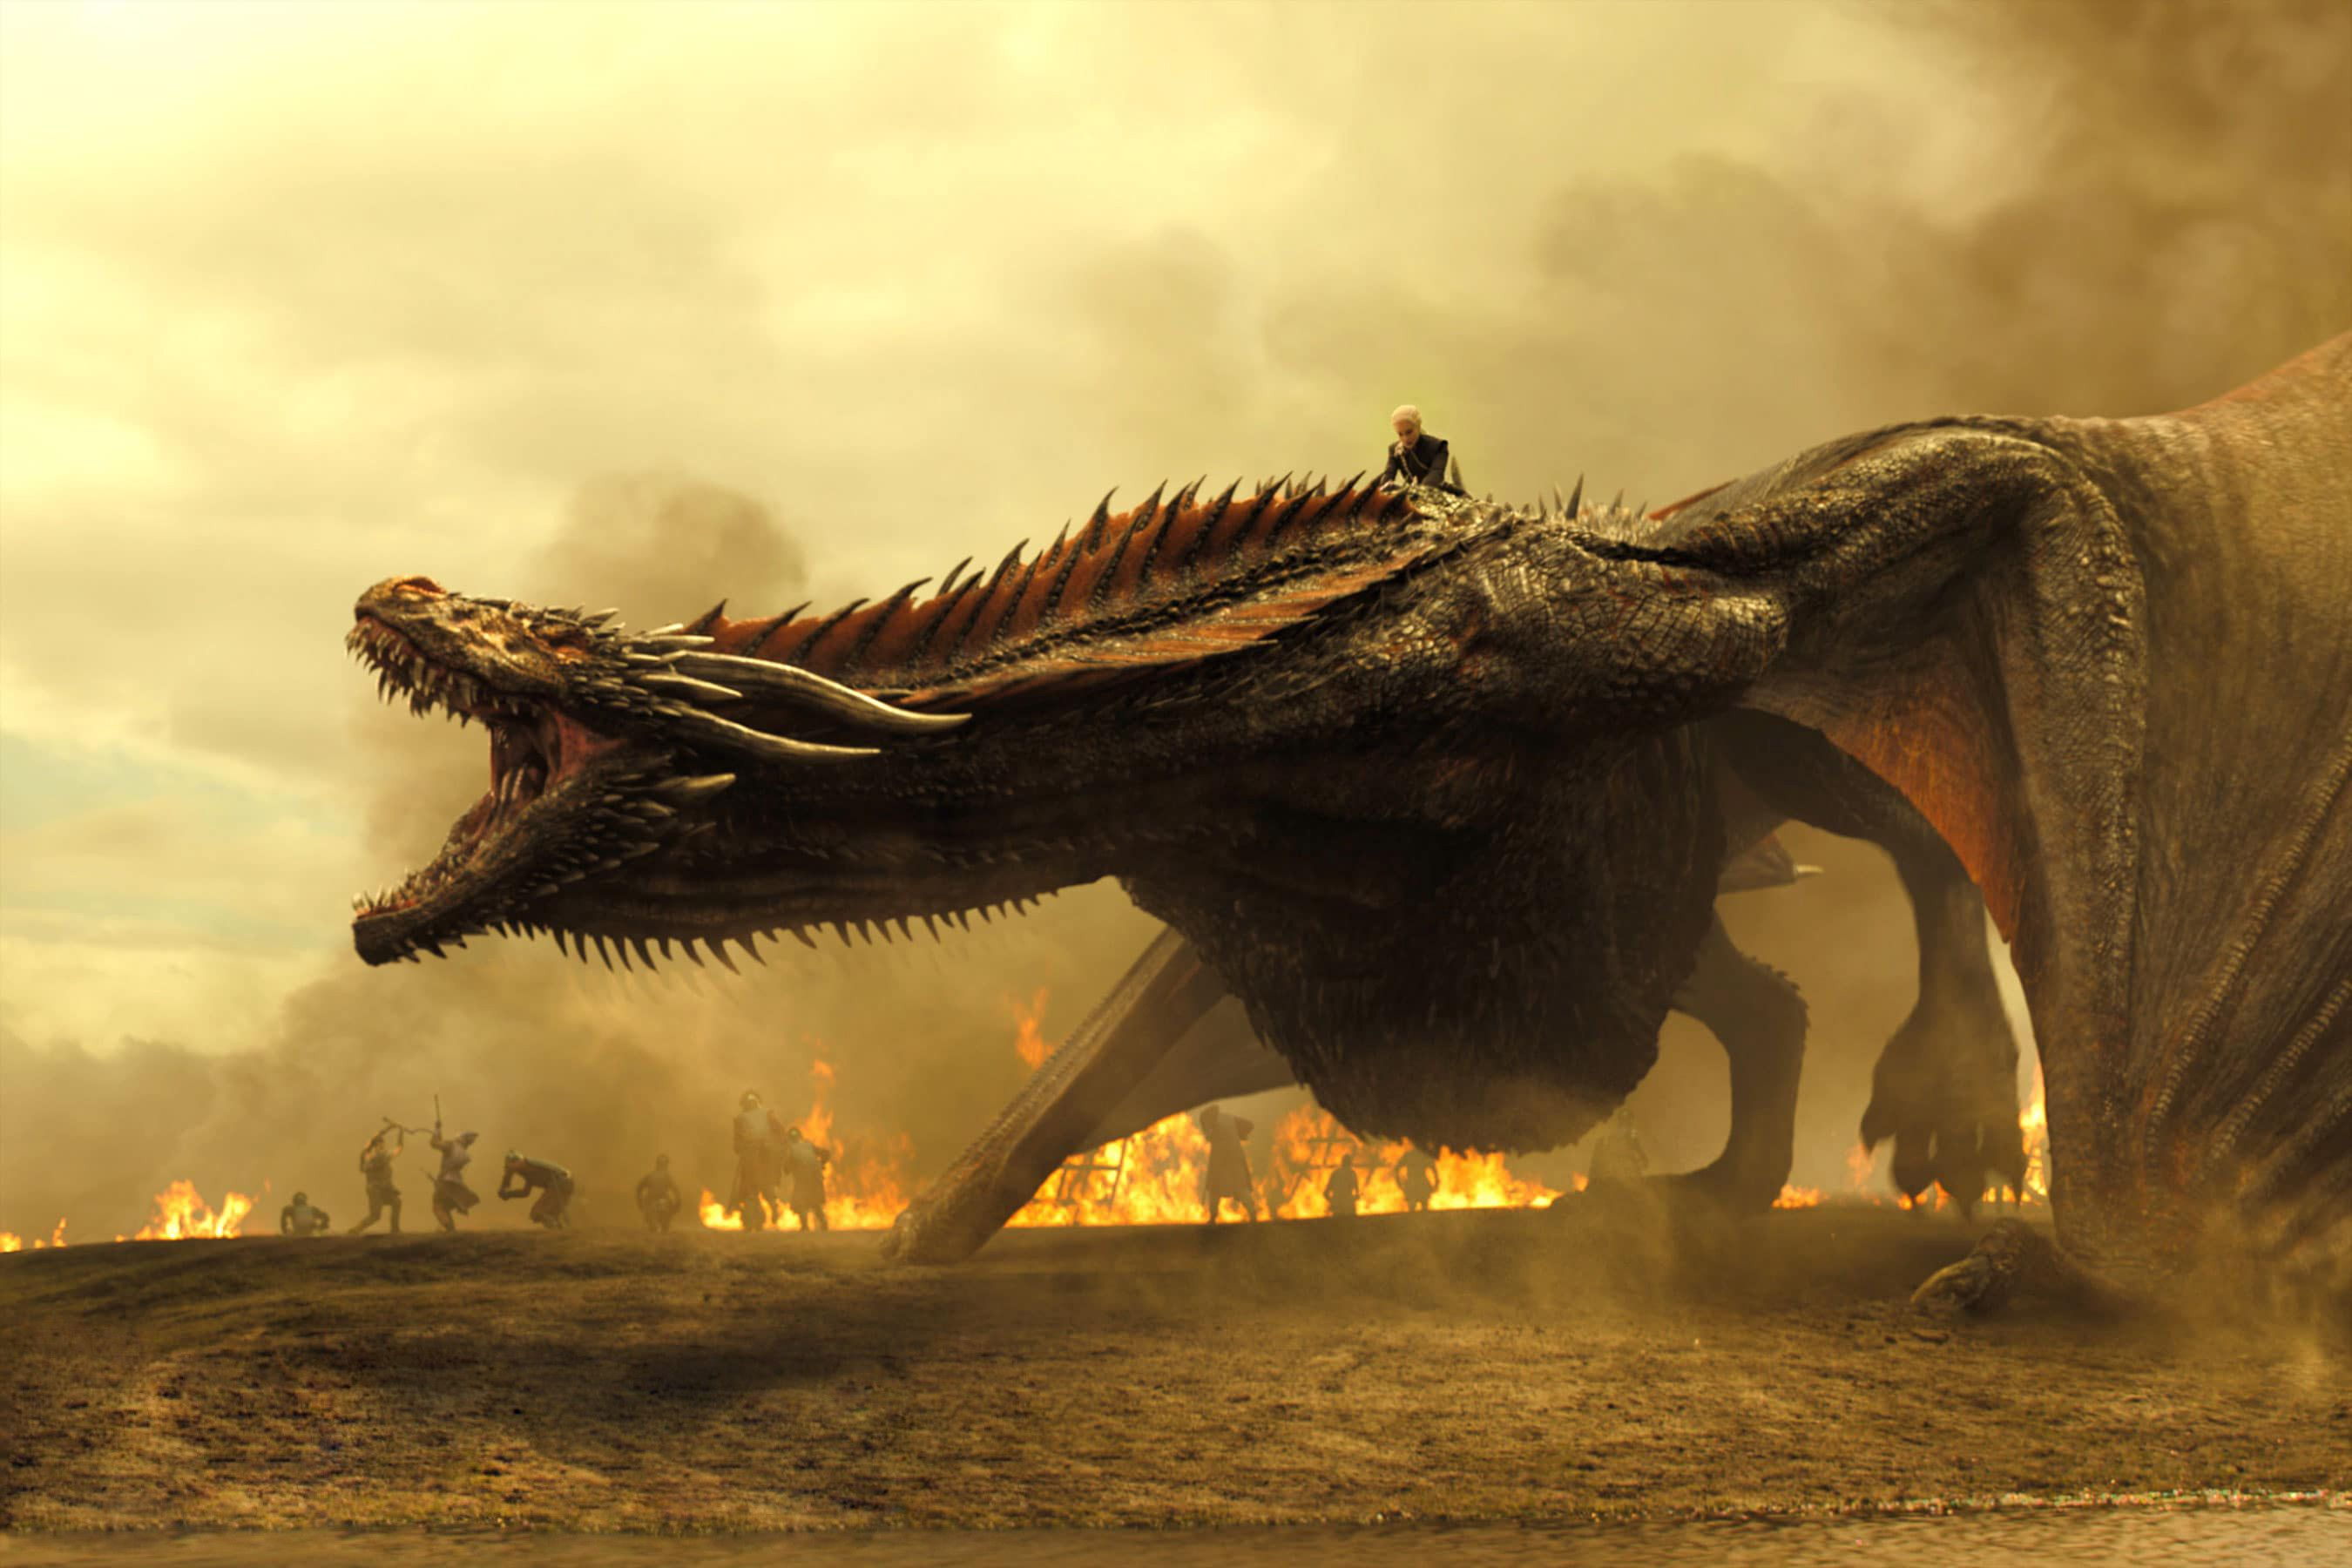 Drogon Game Of Thrones Fans Throne Game Of Thrones Dragons